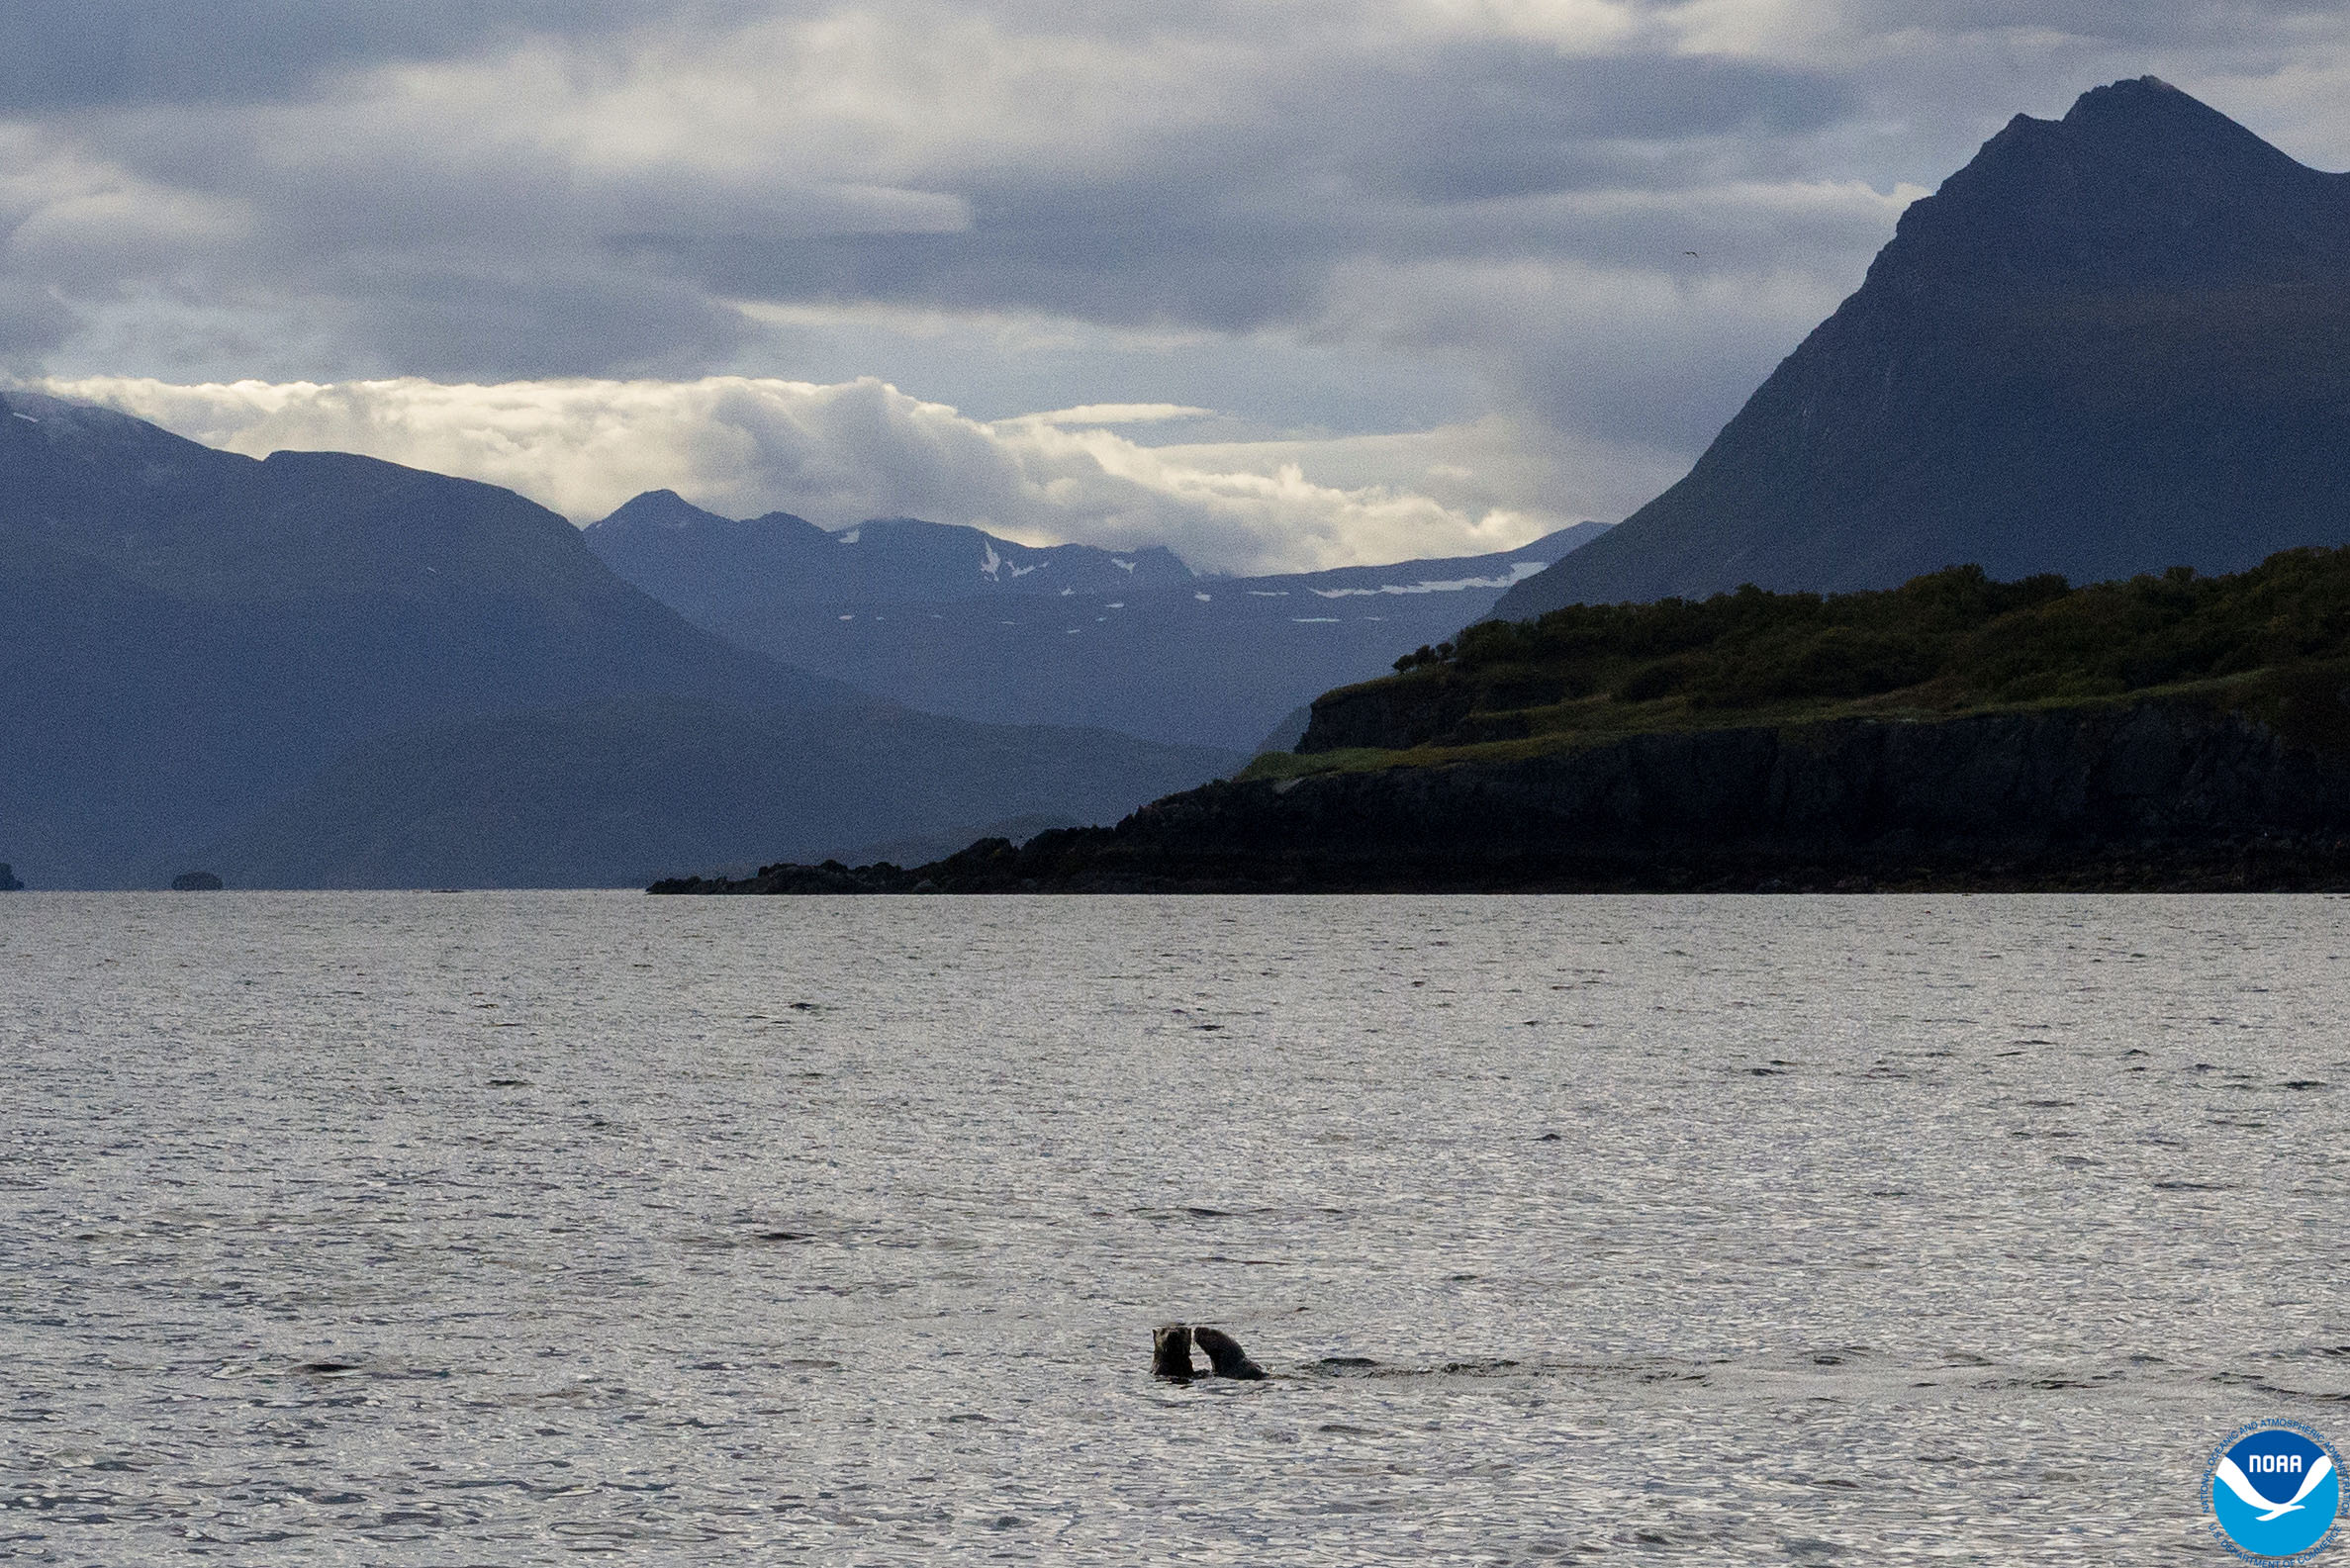 Sea otters at play as the sun rises over Prince of Wales Island, Alaska.